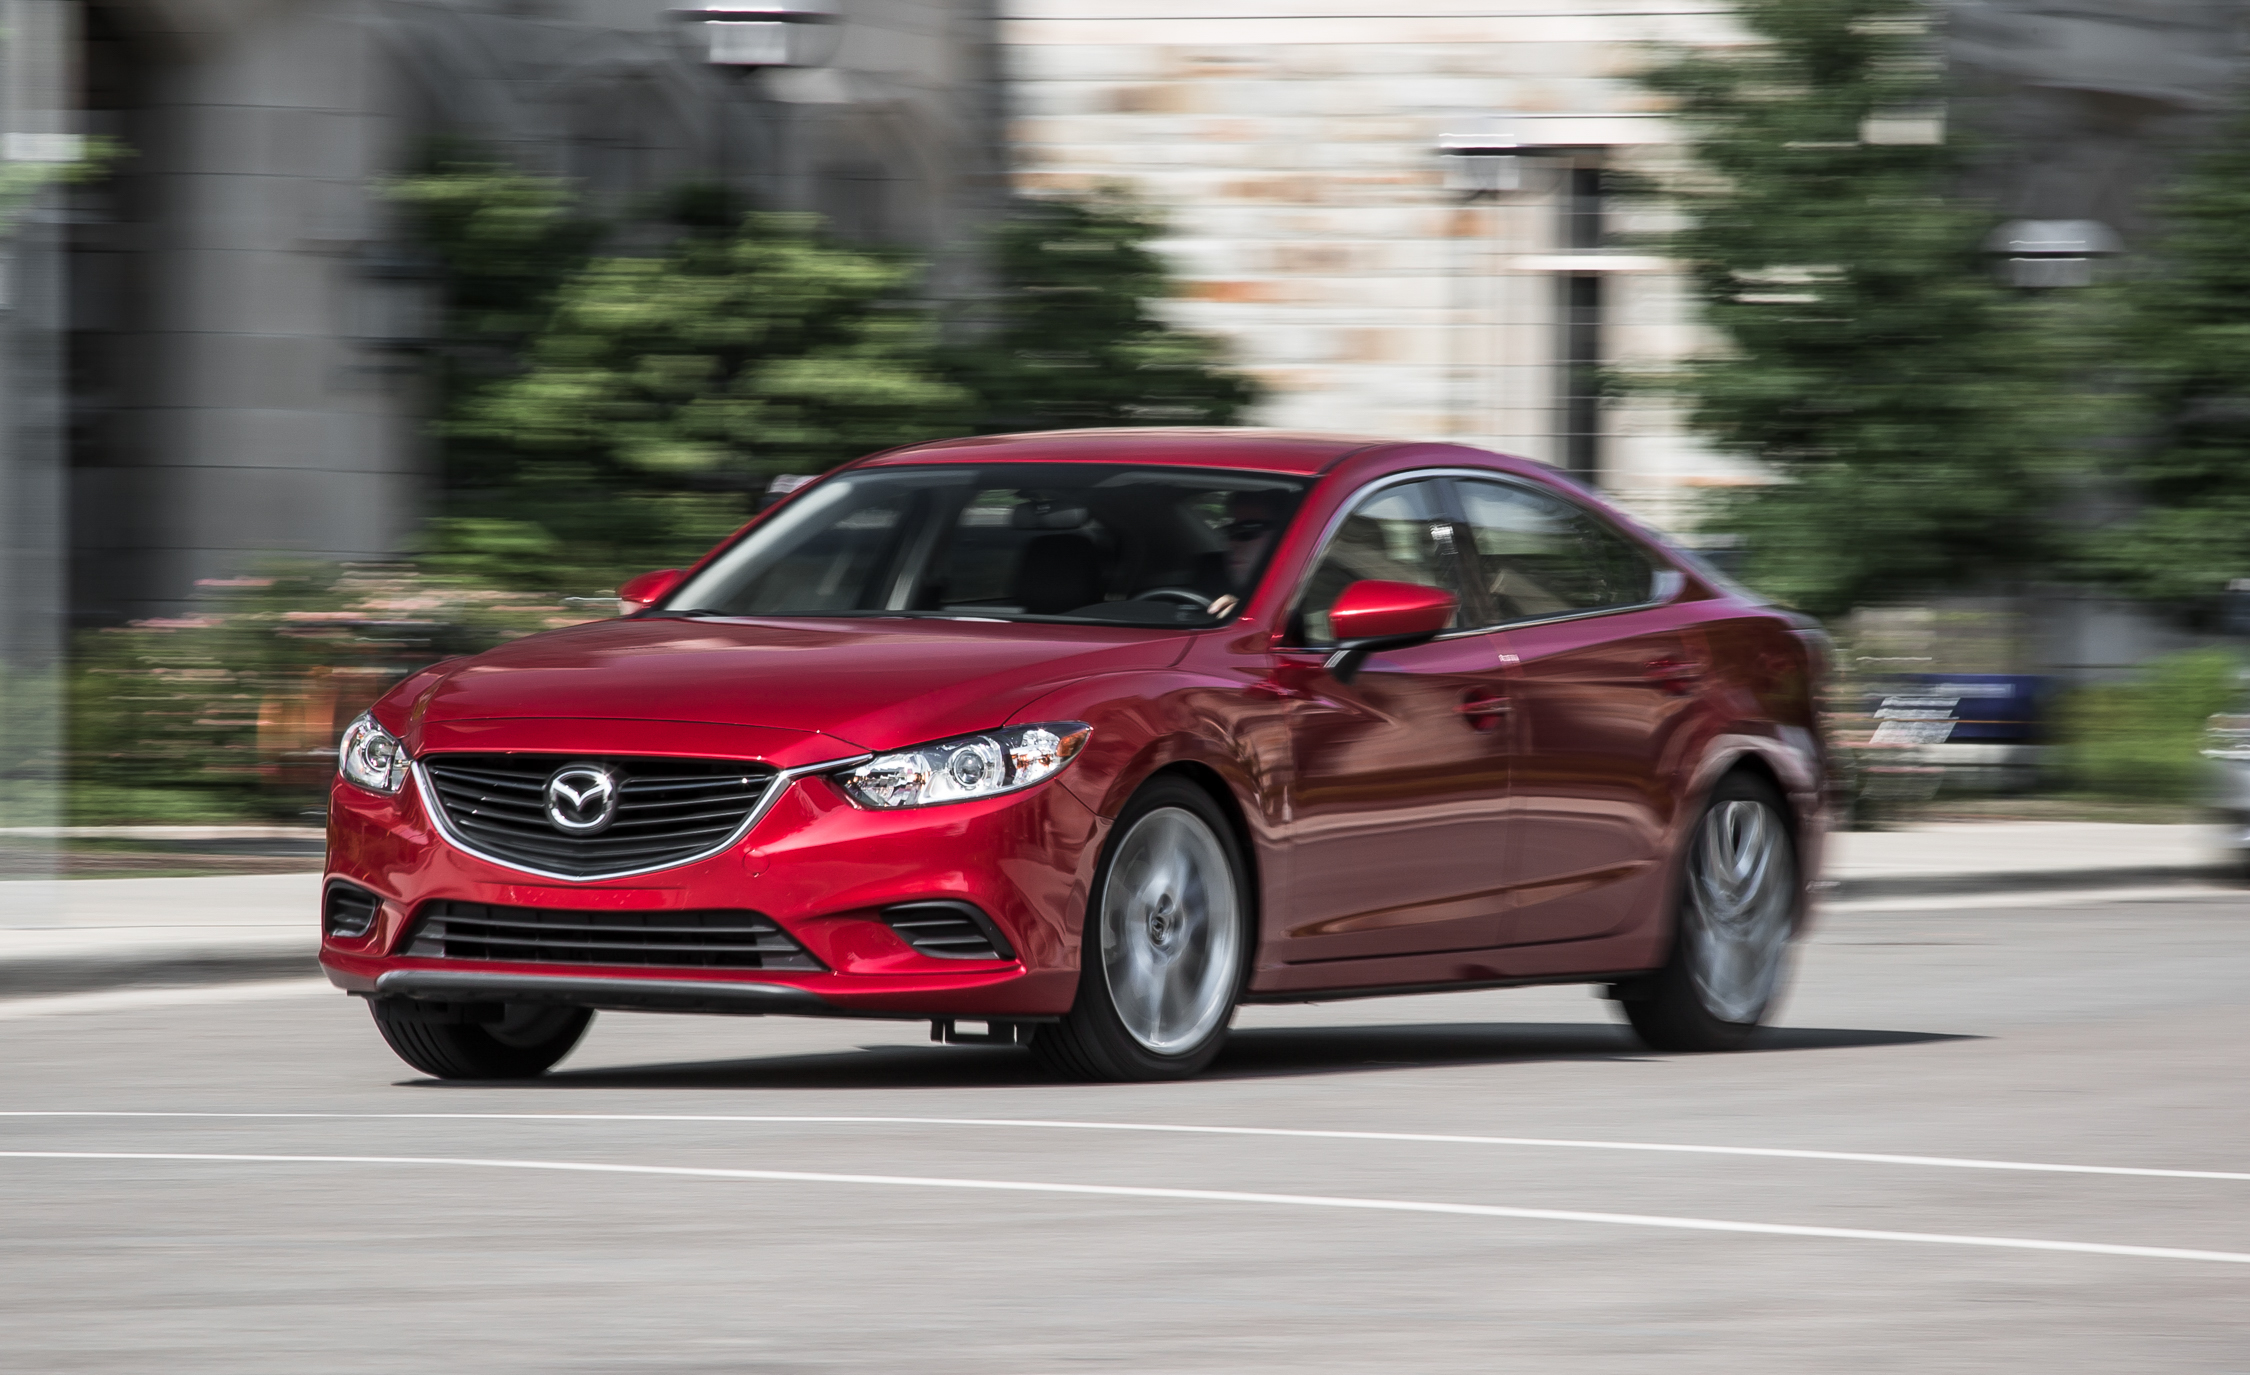 2016 mazda 6 touring 8005 cars performance reviews and test drive. Black Bedroom Furniture Sets. Home Design Ideas